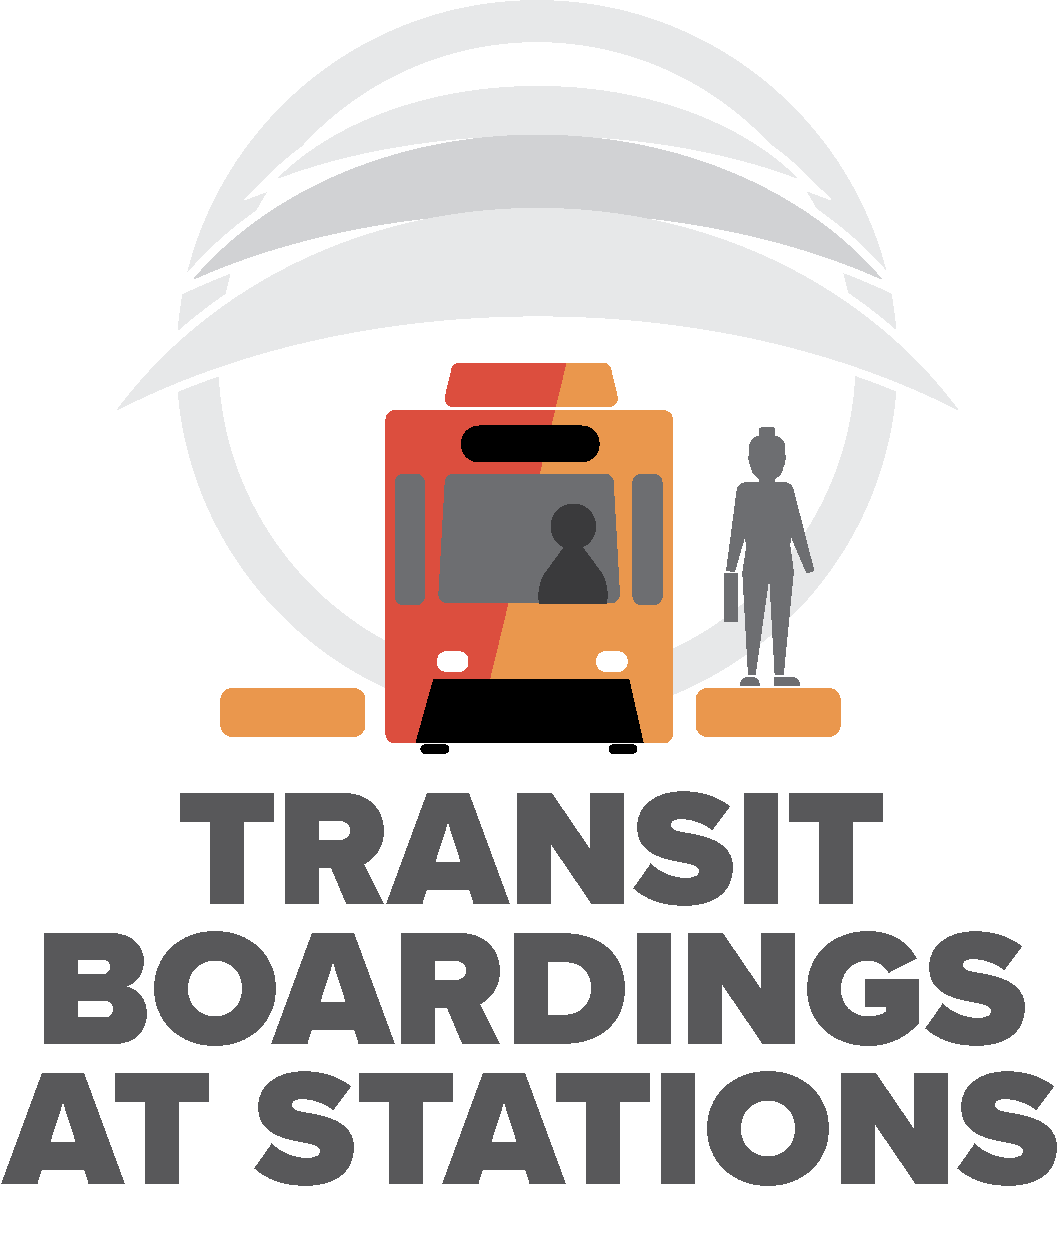 transit boardings at stations